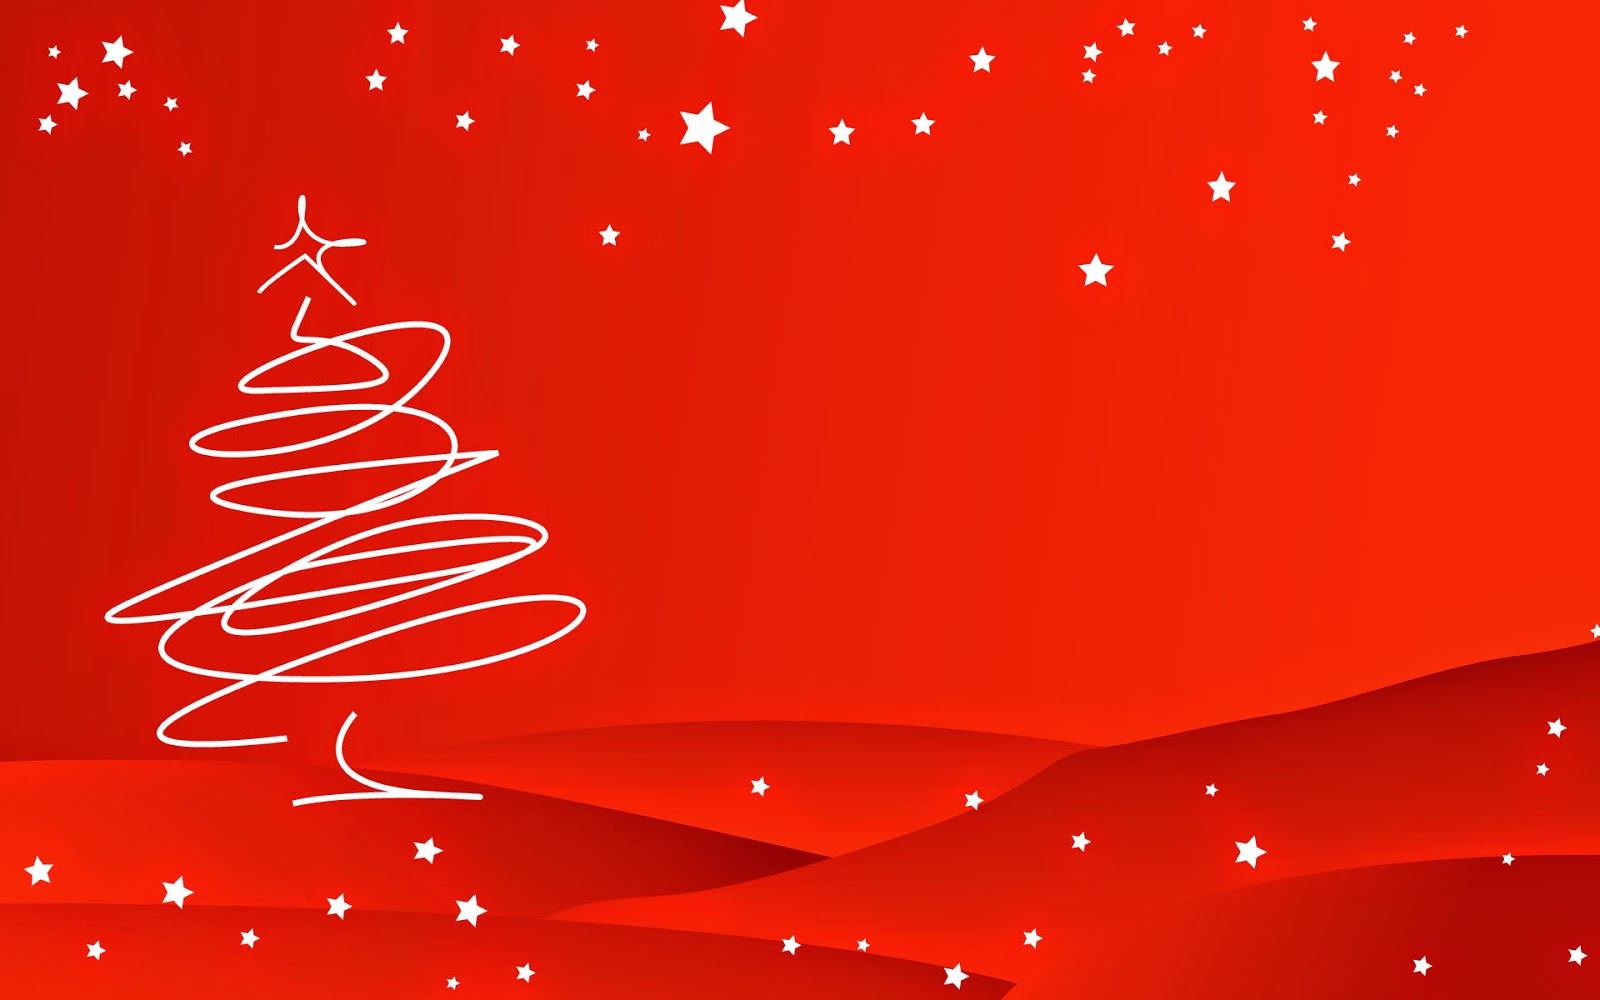 red-BG-white-christmas-tree-design-template-image-for-christmas-cards.jpg